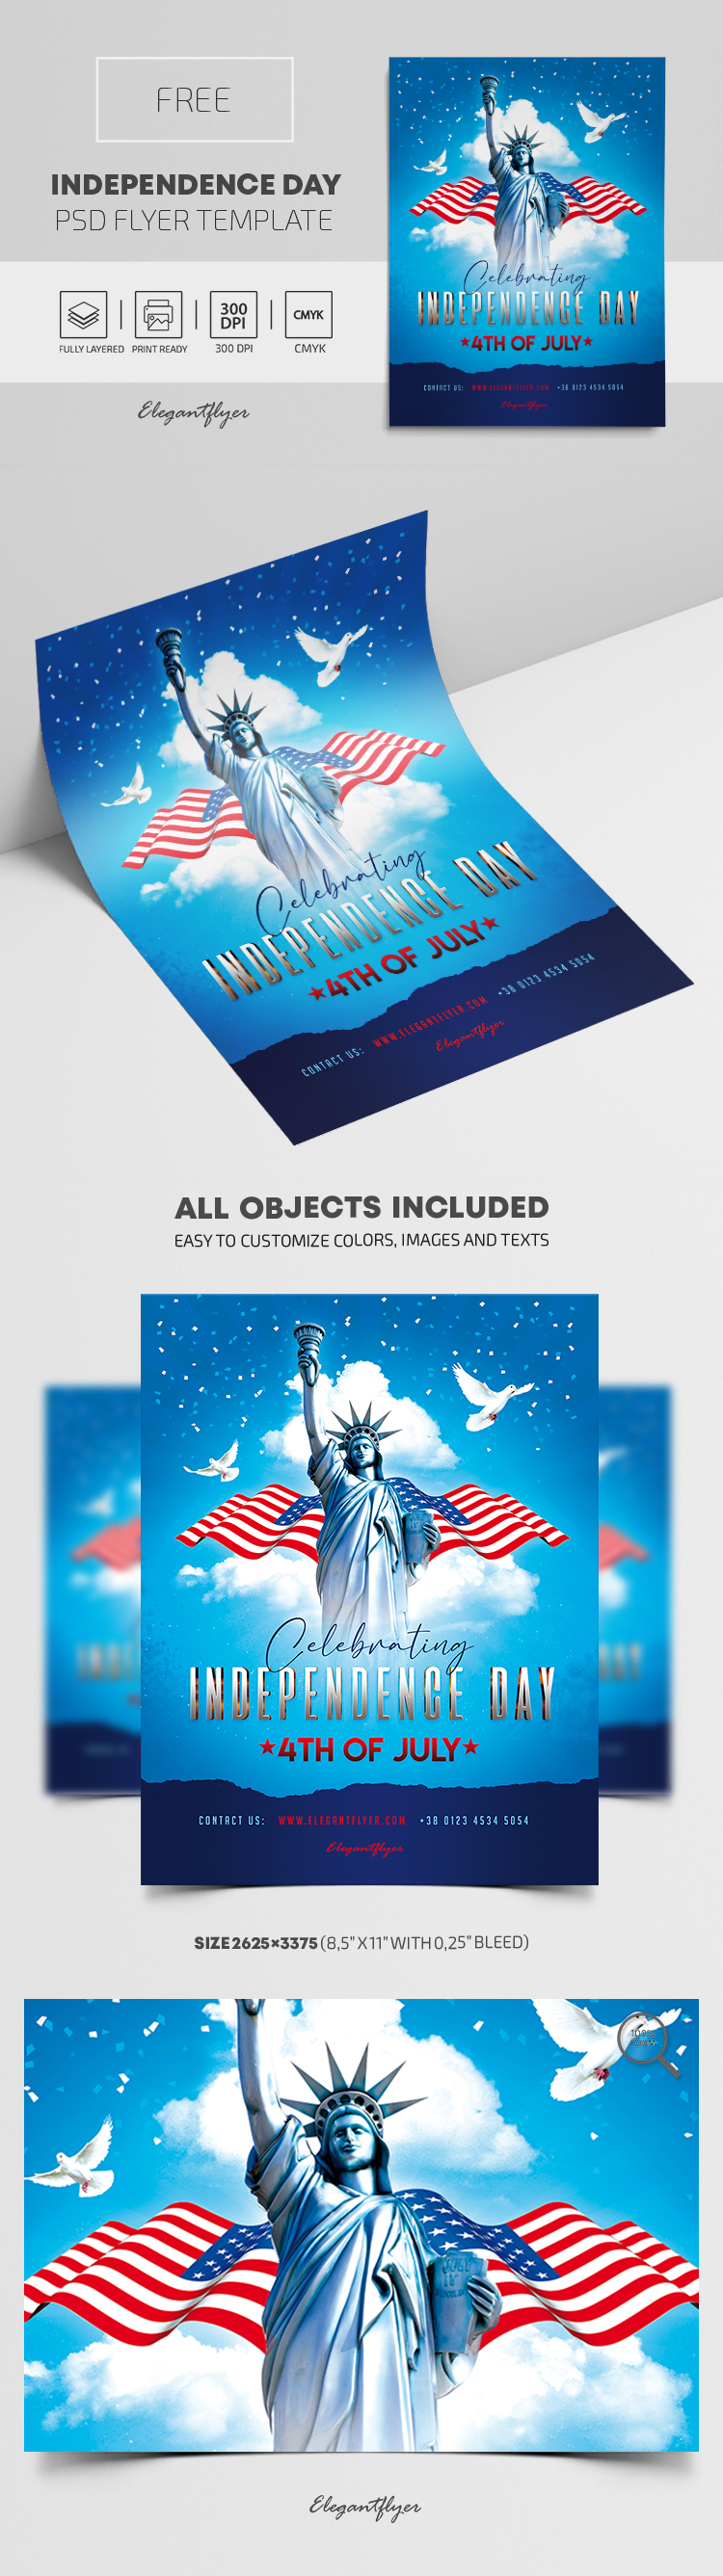 Independence Day – Free Flyer PSD Template